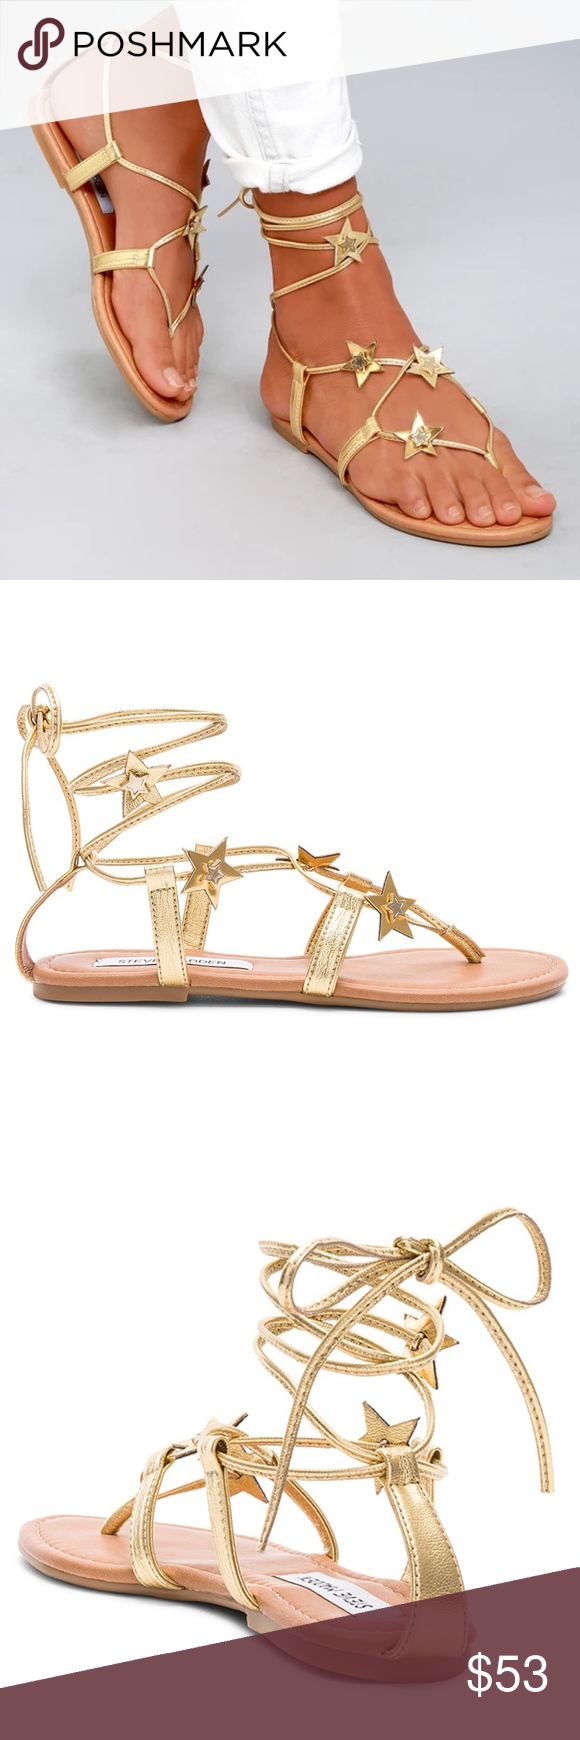 29a08362874dd Steve Madden Jupiter Lace Up Sandal Gold 9.5 NIB Brand New In The Box Steve  Madden Metallic Gold Lace Up Gladiator Flats Size 9.5M, Slim Metallic Laces  ...